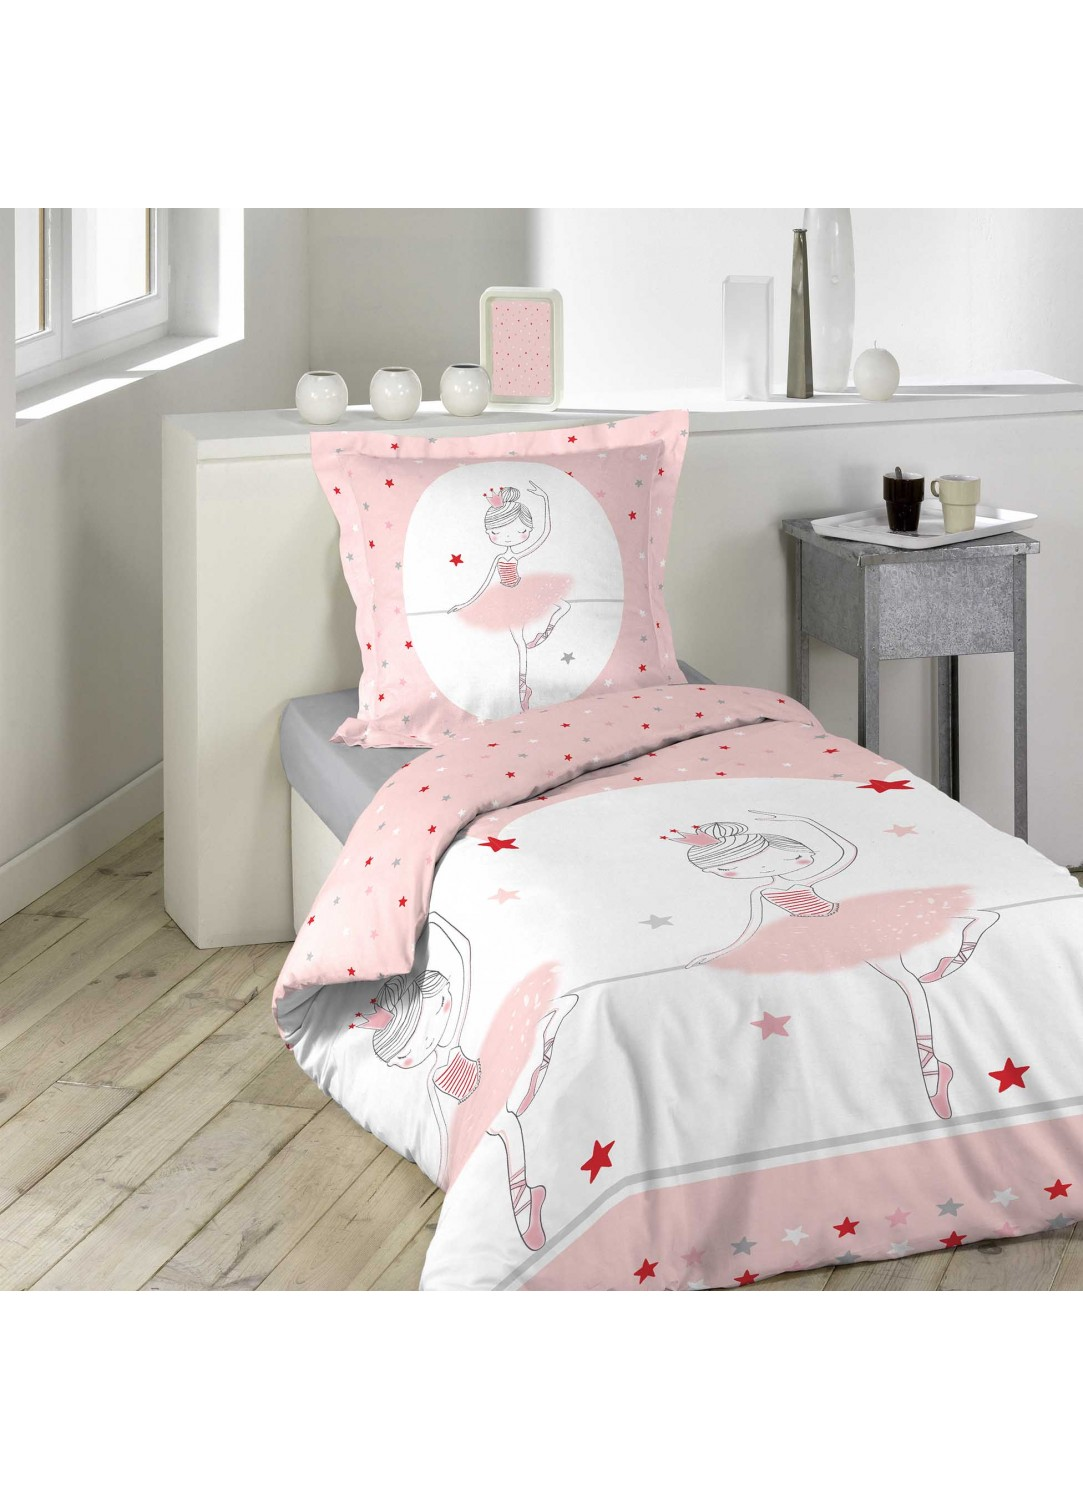 parure de lit enfant danseuse etoile multicolors homemaison vente en ligne parures de lit. Black Bedroom Furniture Sets. Home Design Ideas